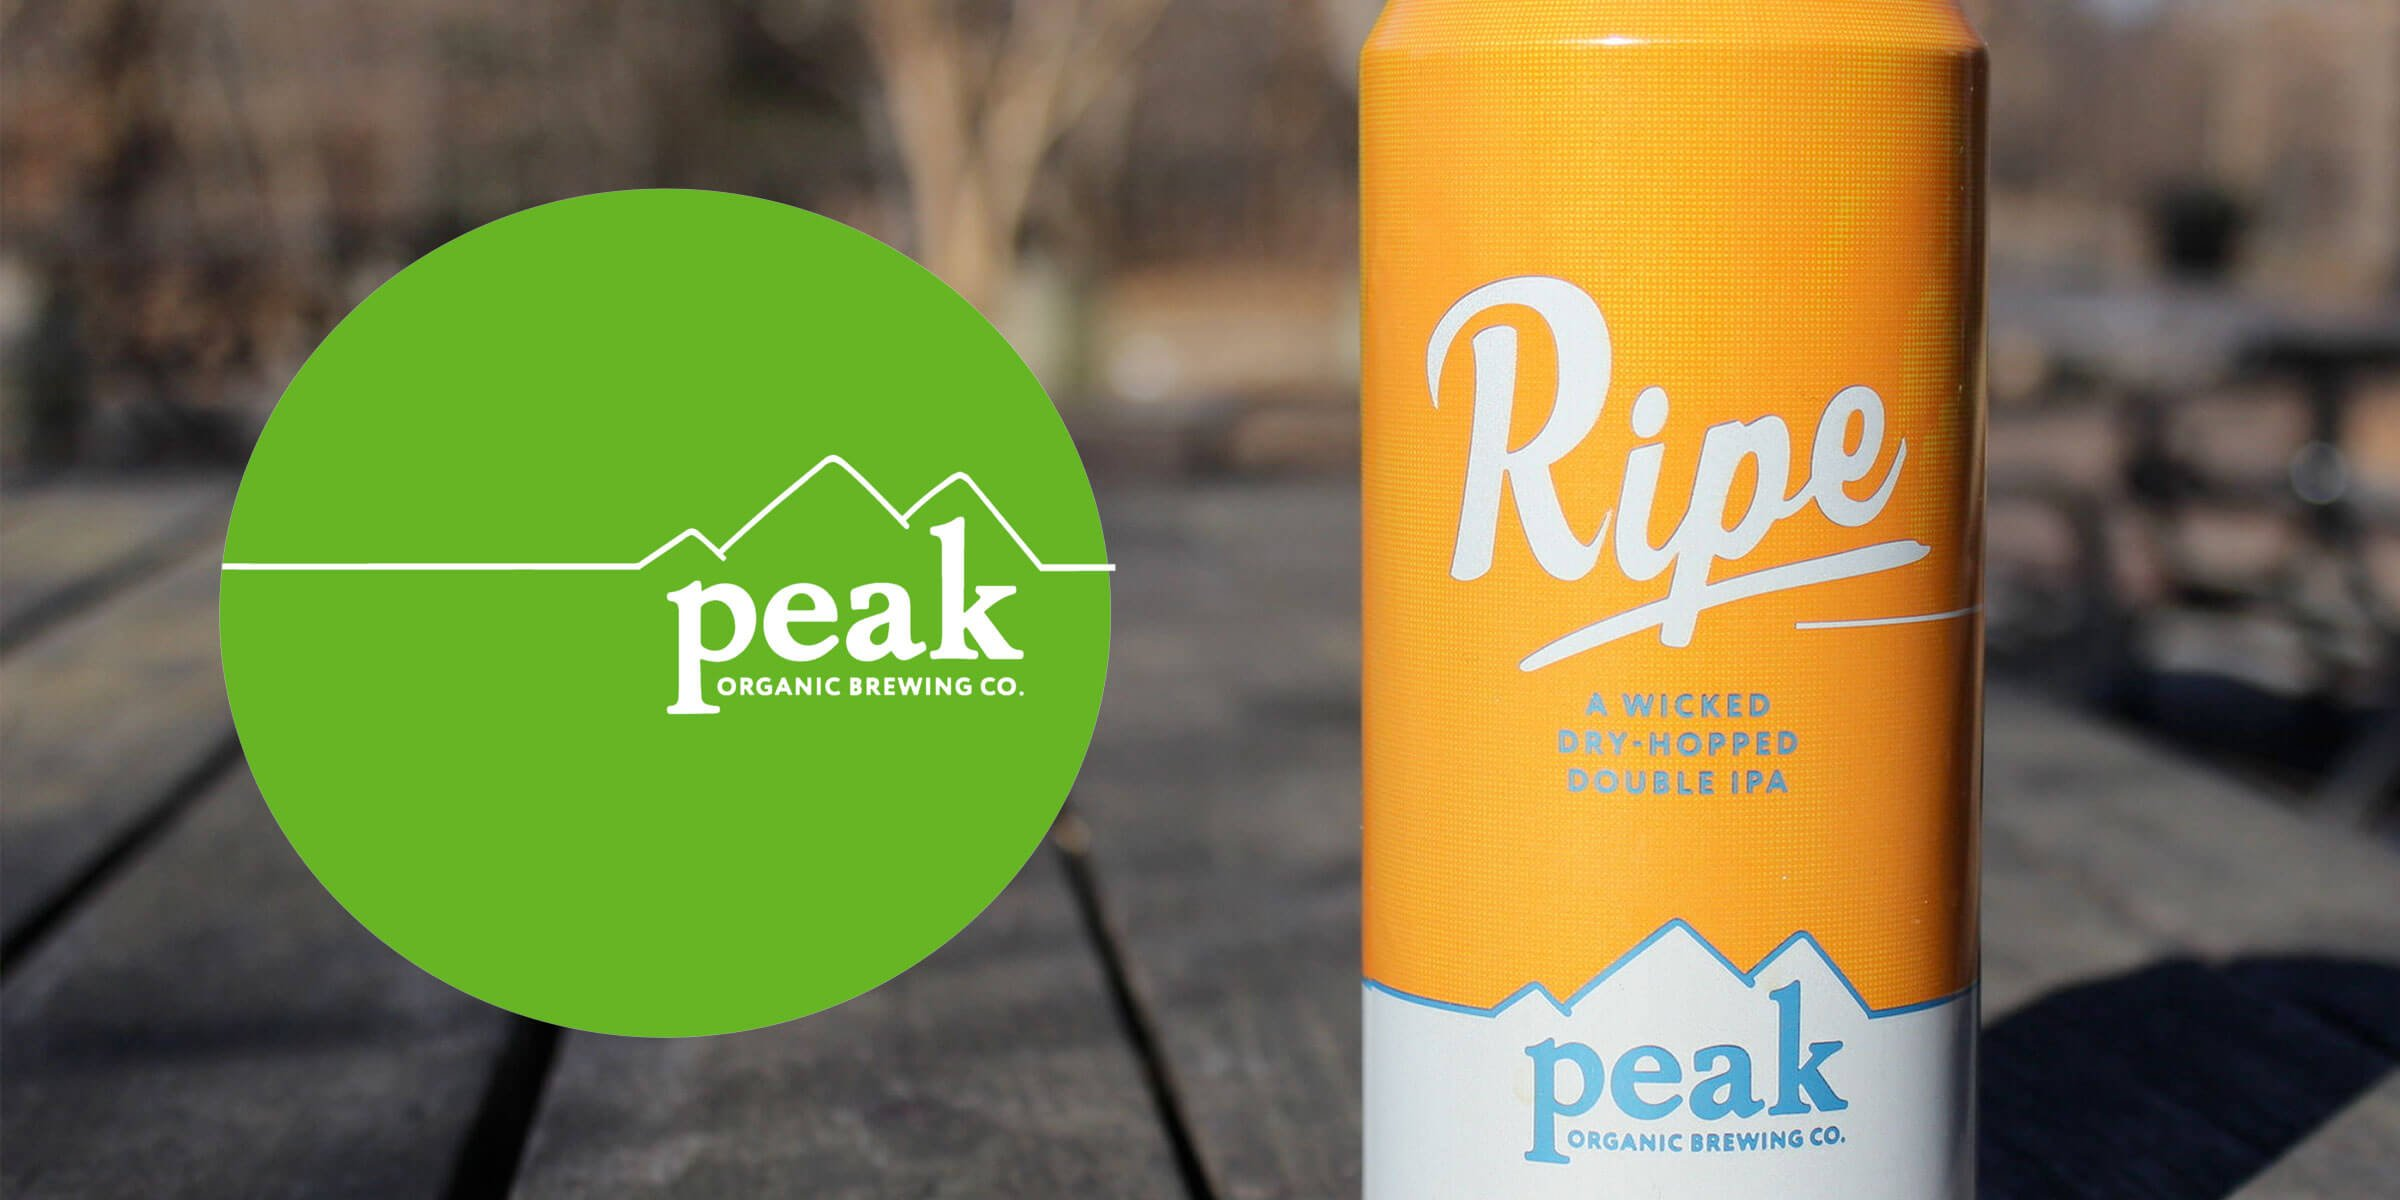 Stony Creek Brewery has filed a lawsuit against Shipyard and Peak Organic for the latter's Ripe Double IPA